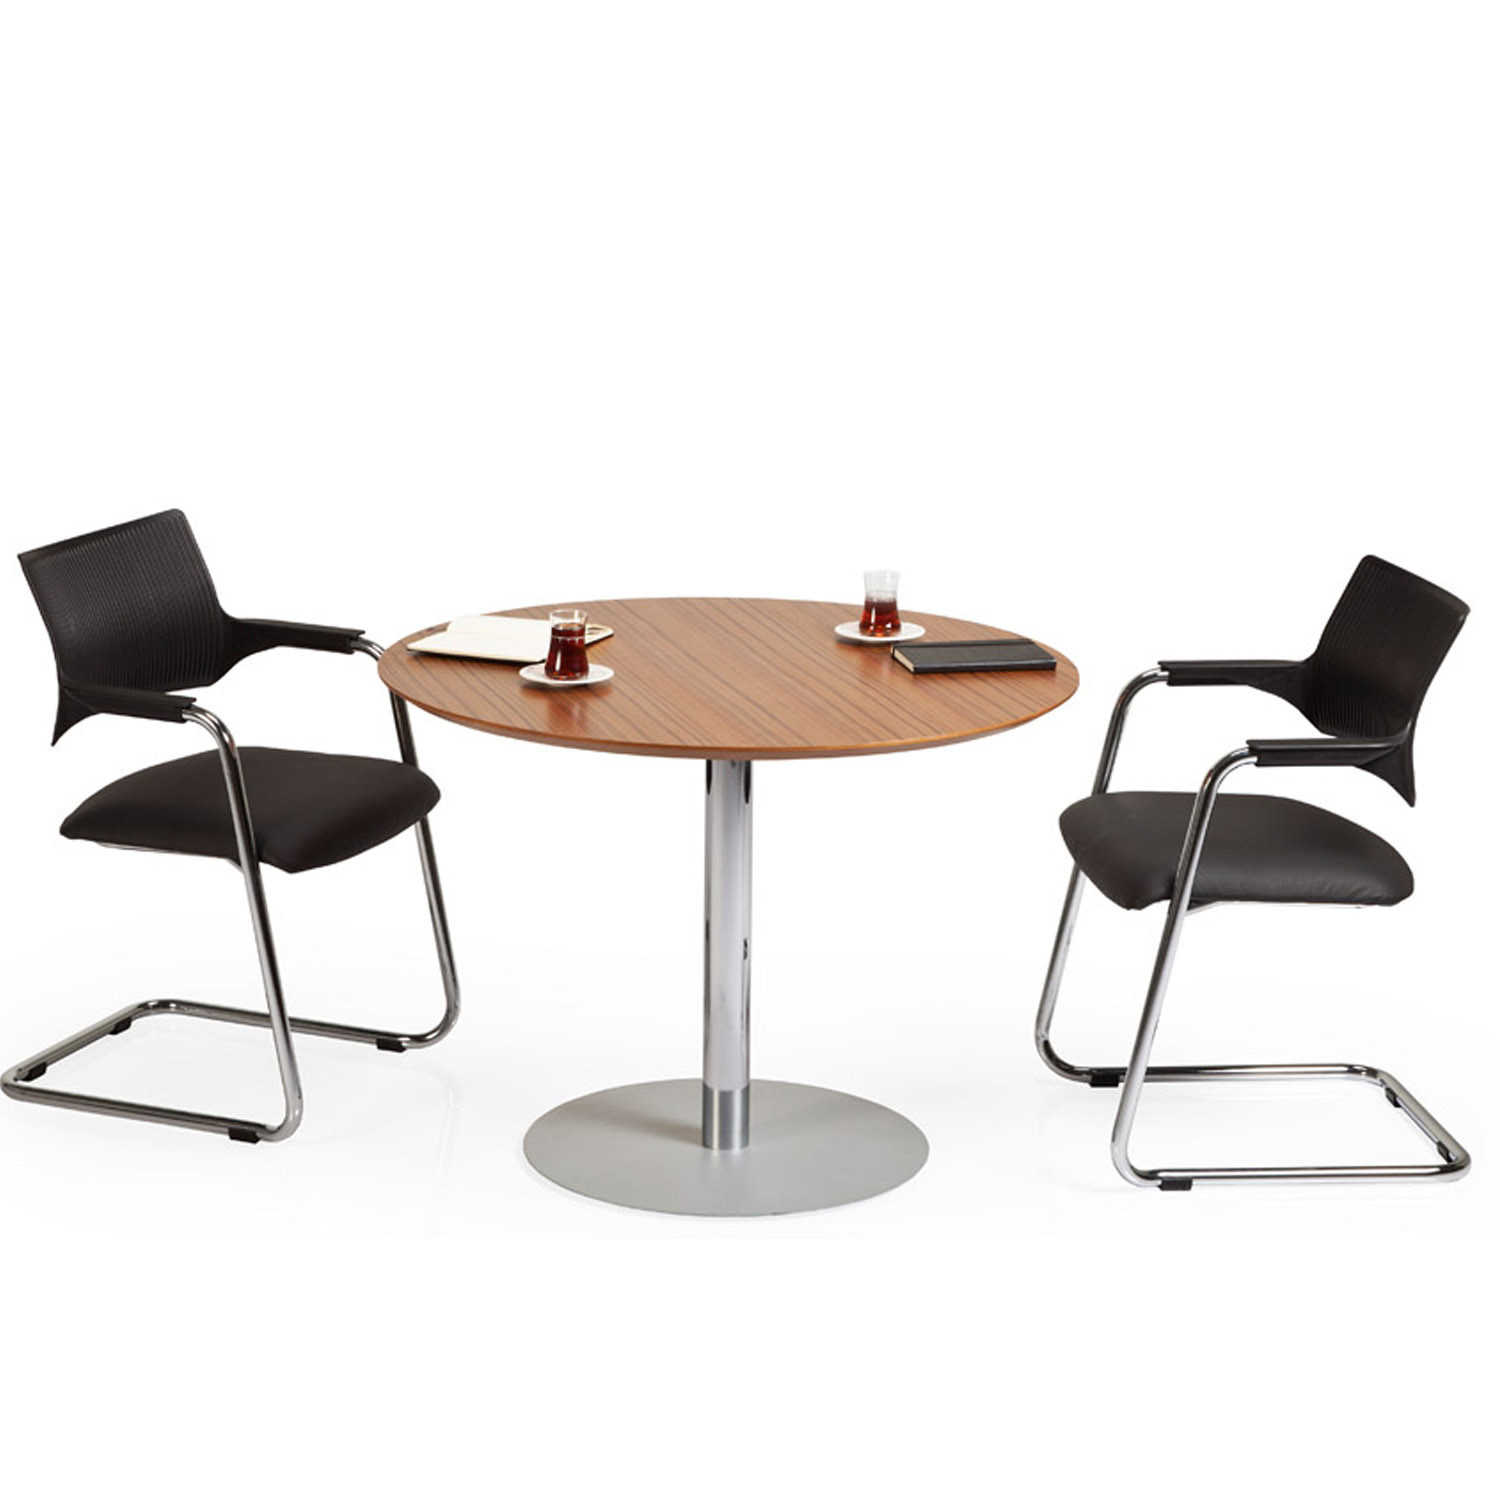 small office tables. Small Office Table And Chairs. Guamba Tables Chairs F B